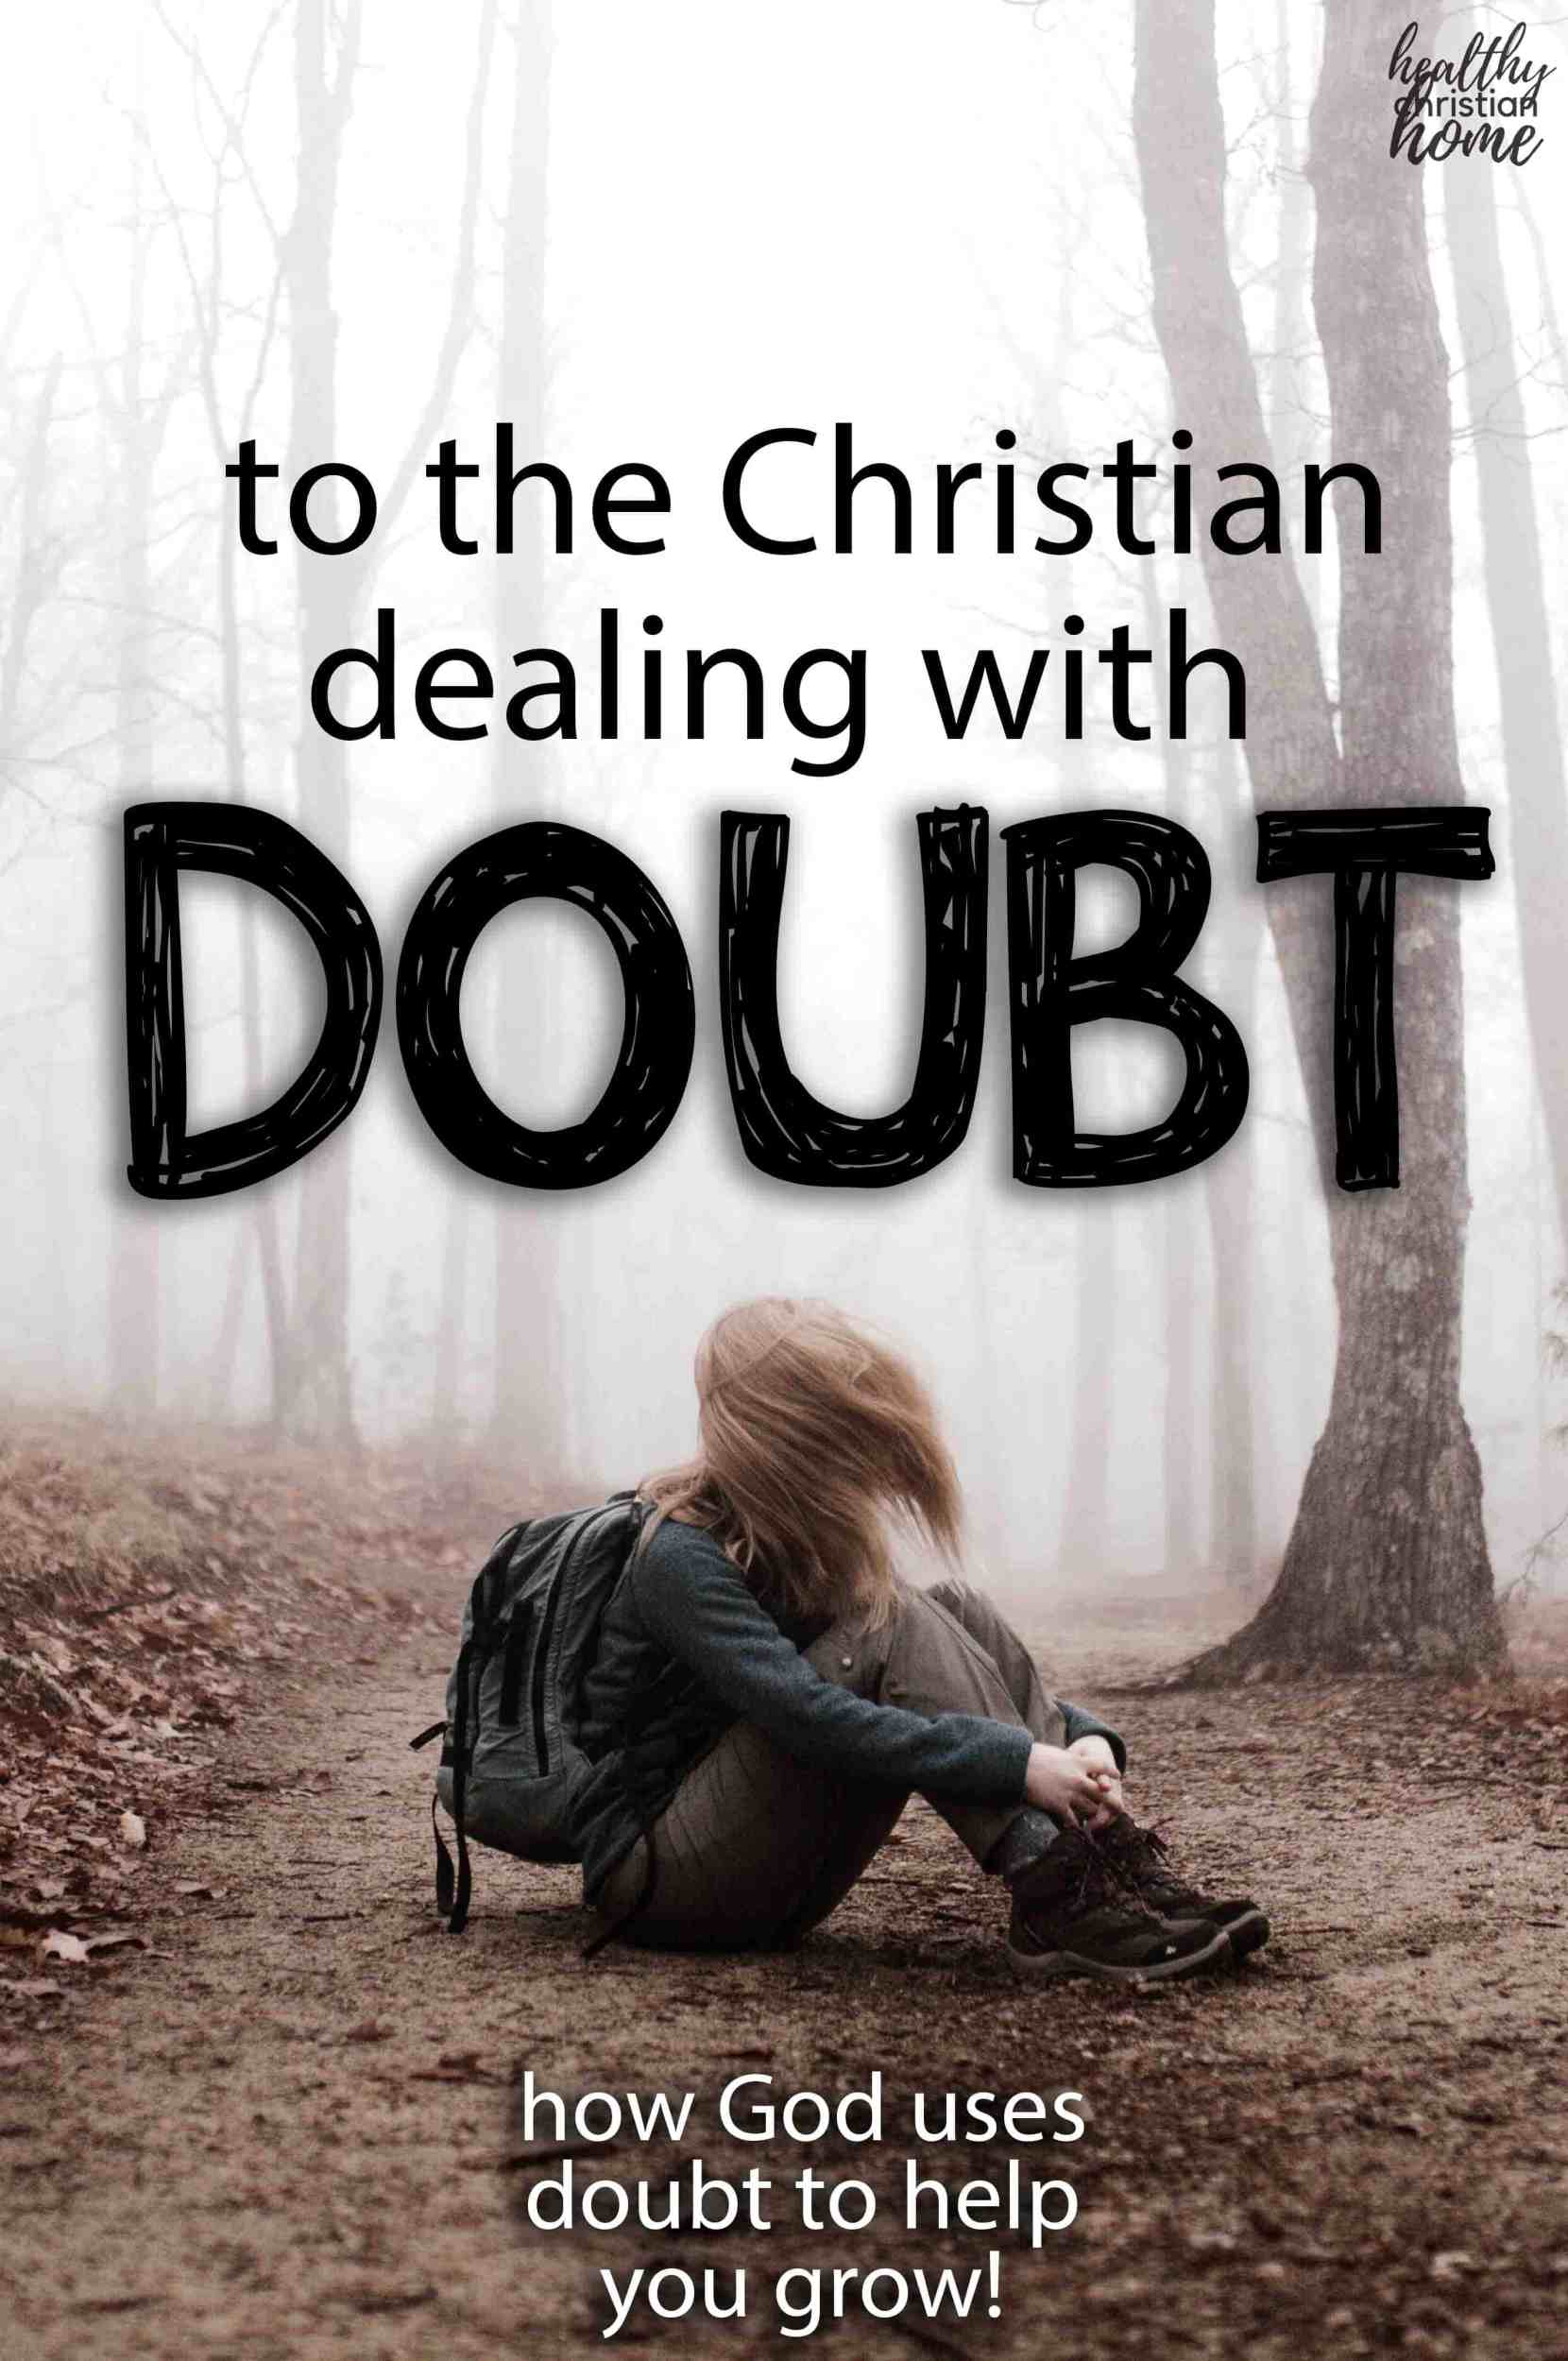 A girl lost in the woods, with the title text Christian doubt.